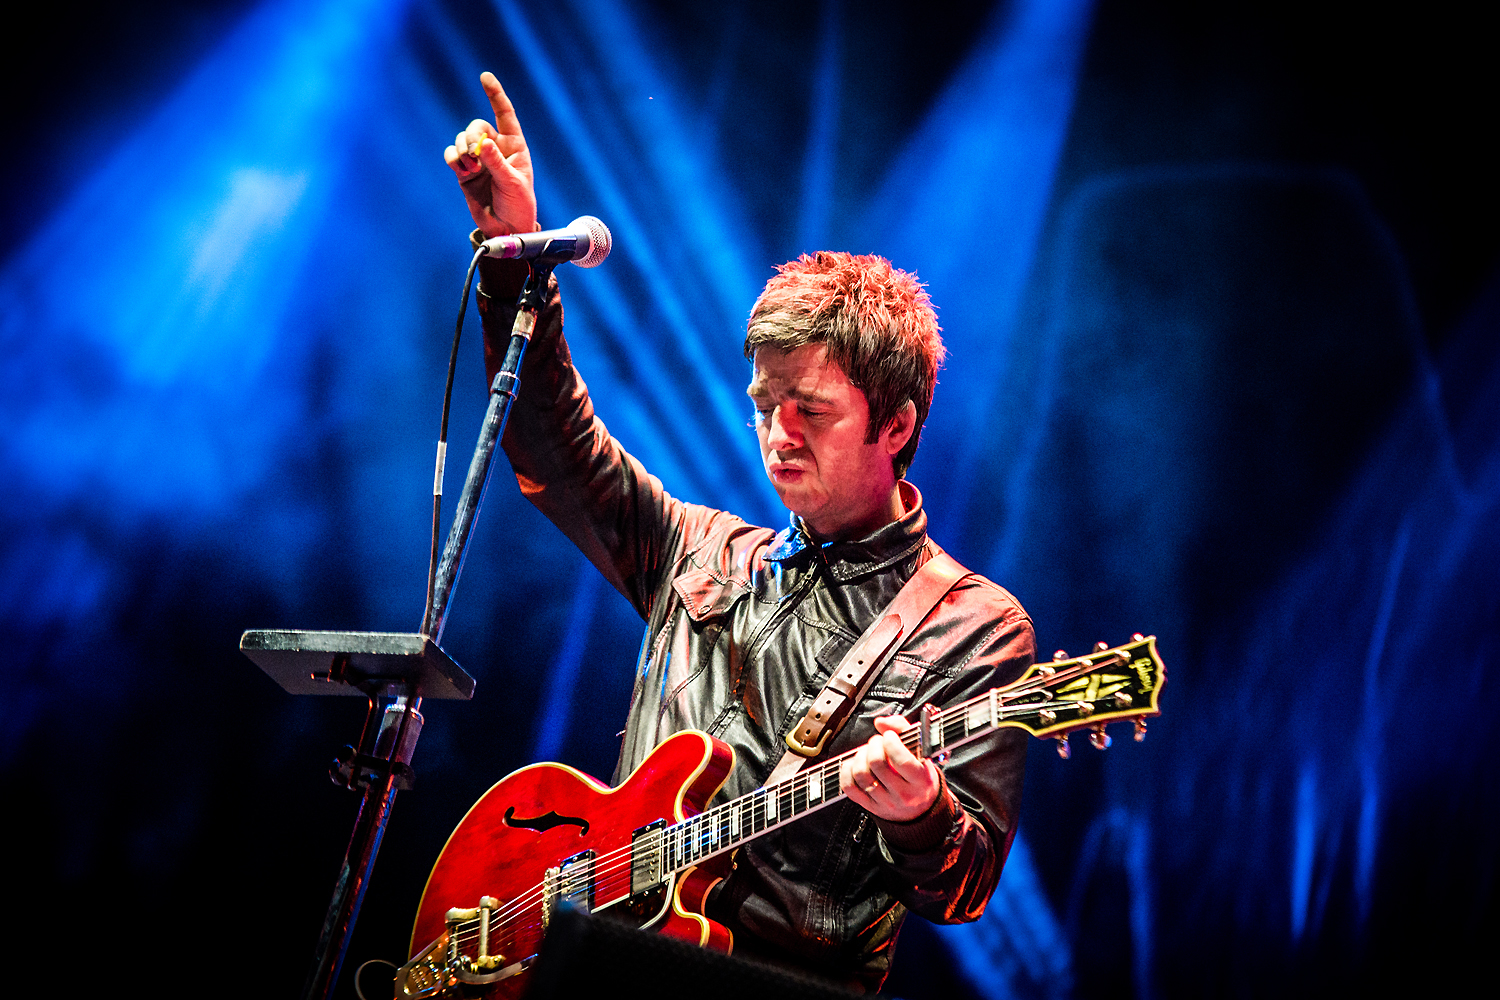 BKS 707 - Noel Gallagher's High Flying Birds